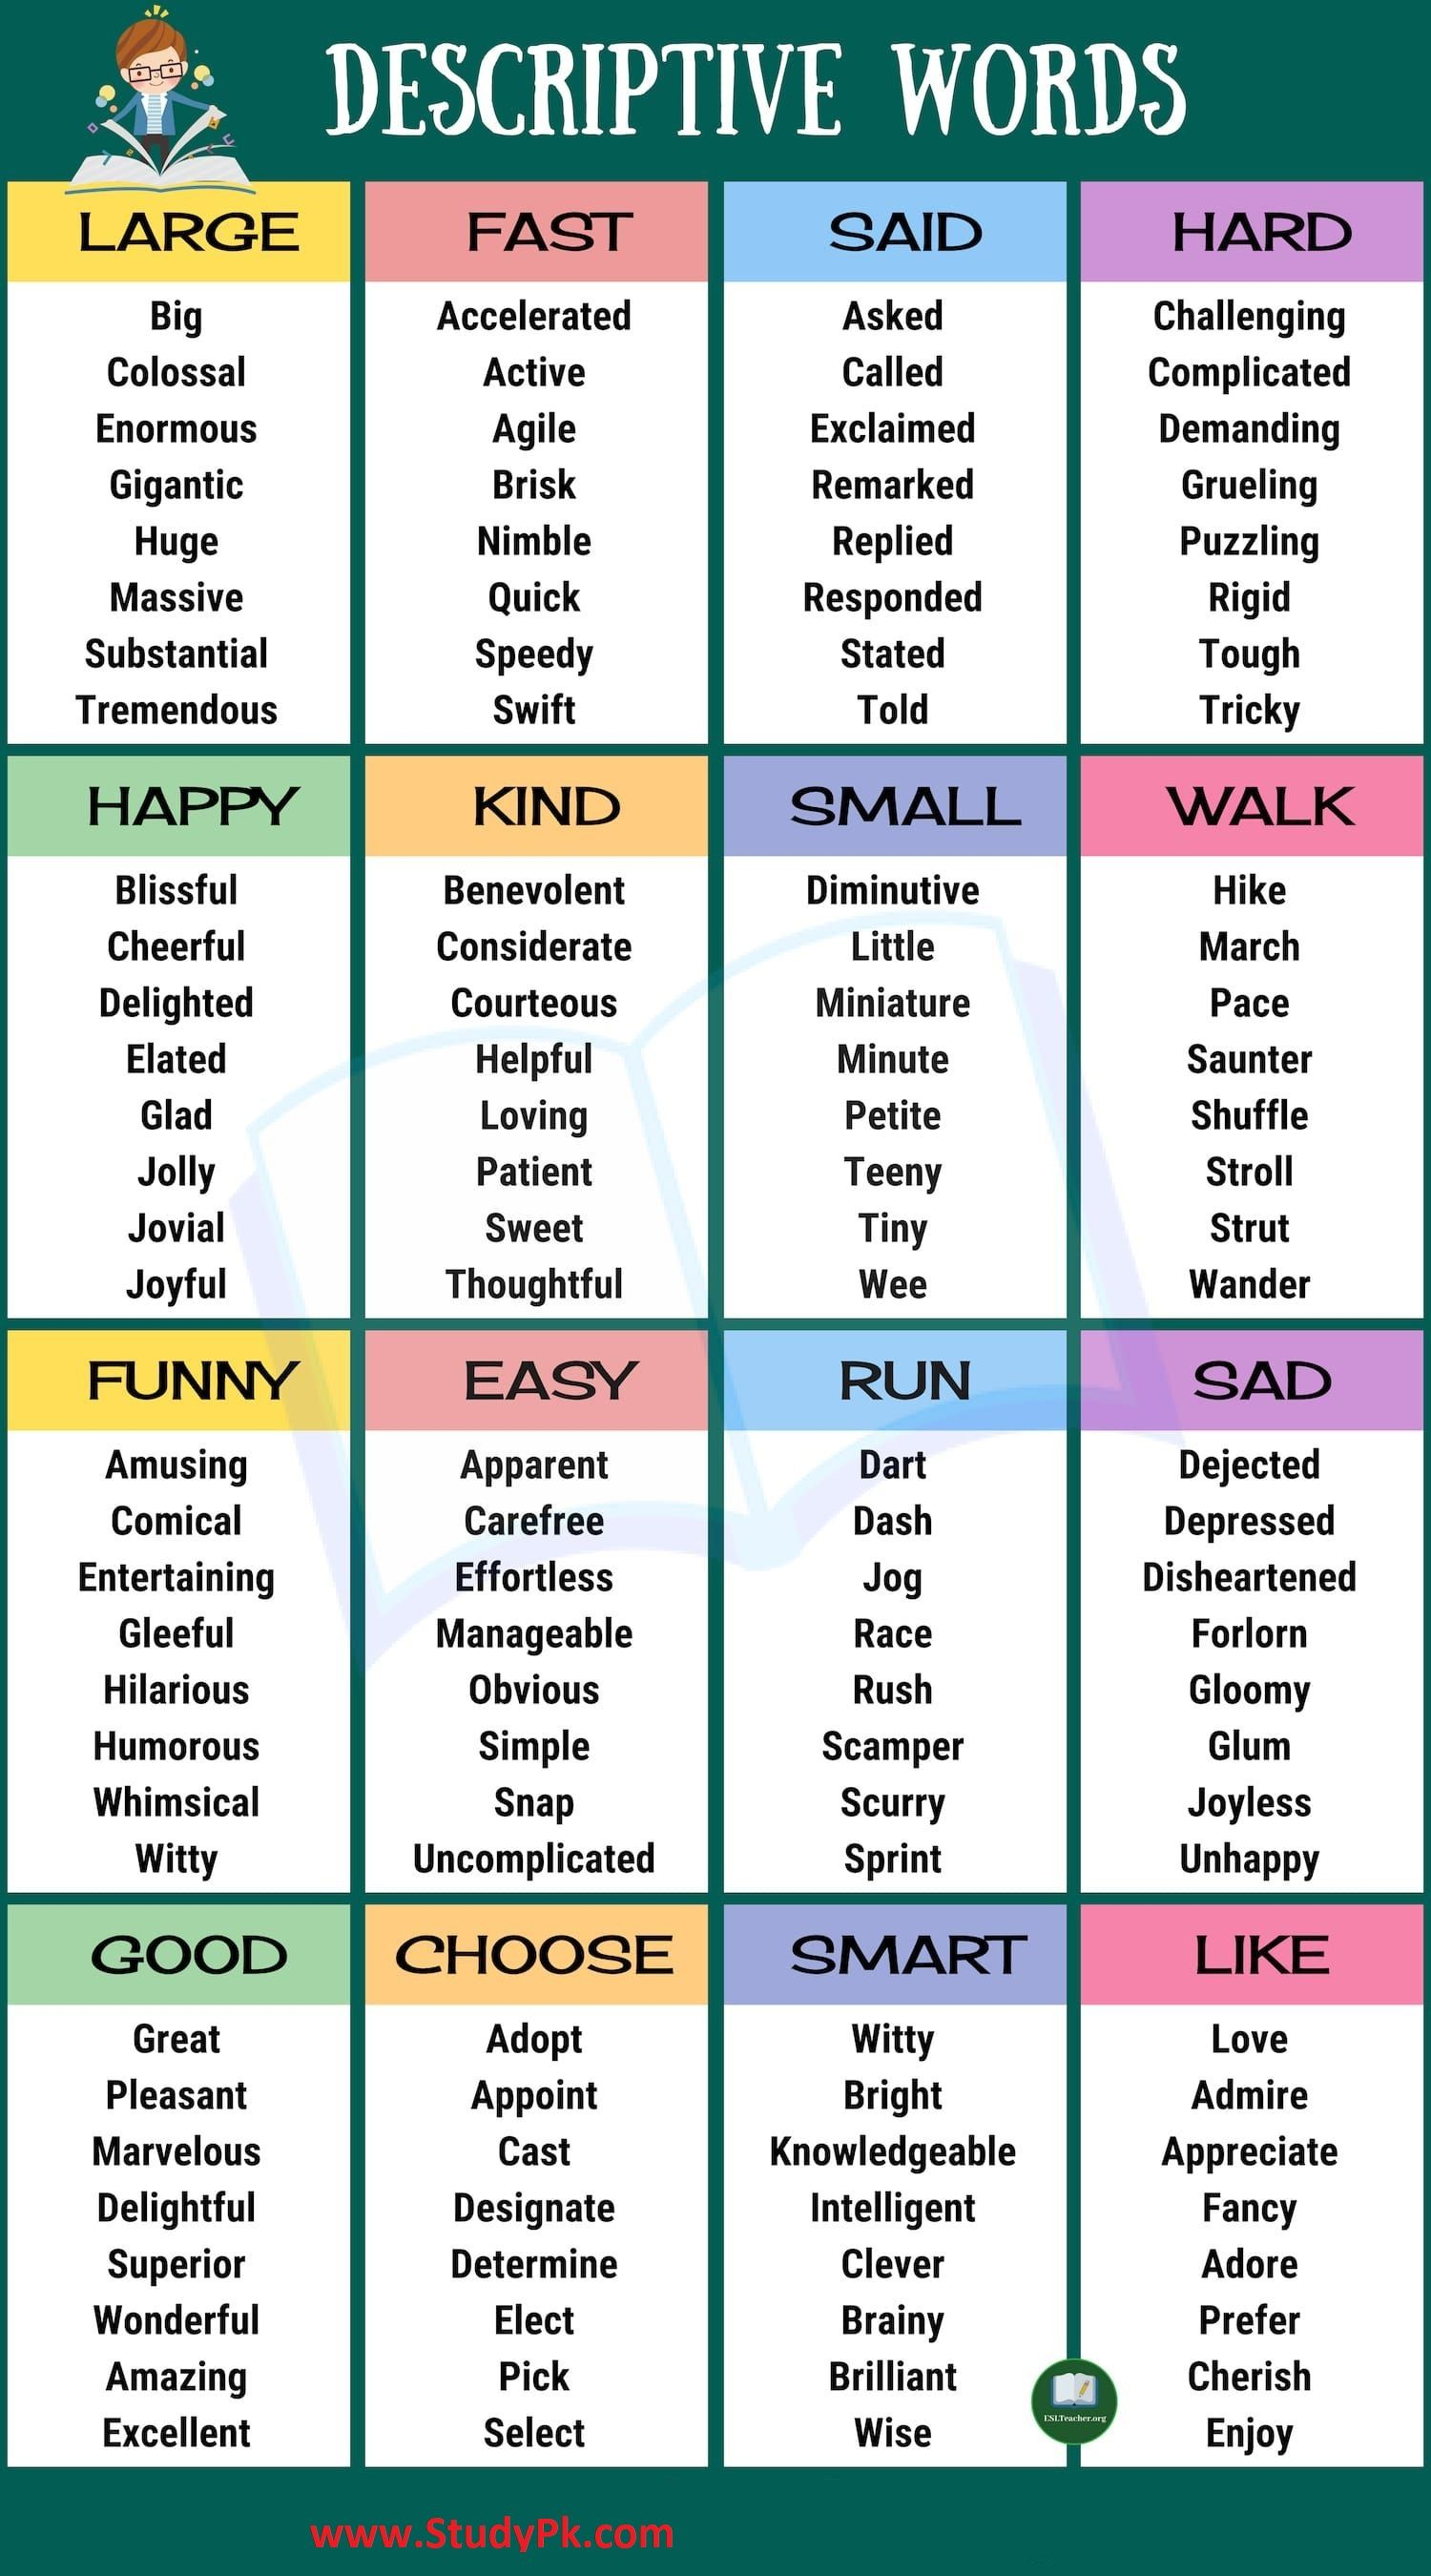 List of Descriptive Words: Adjectives, Adverbs and